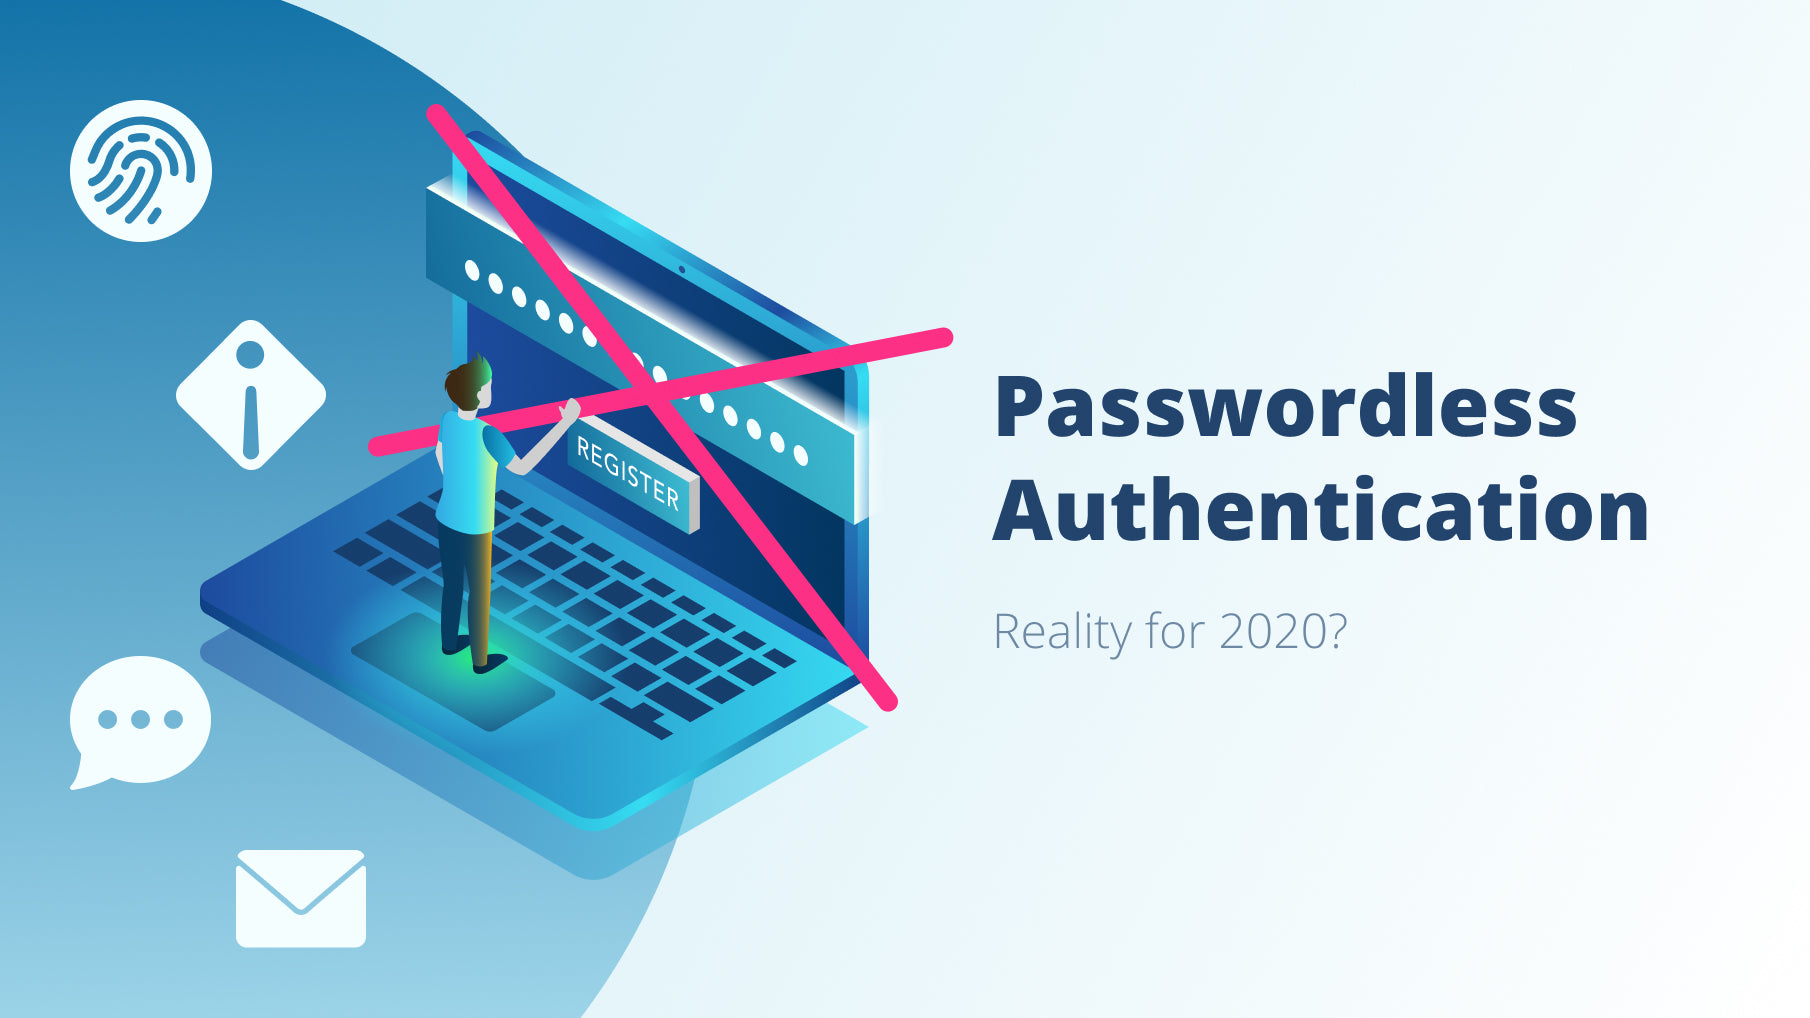 Passwordless Authentication 2020